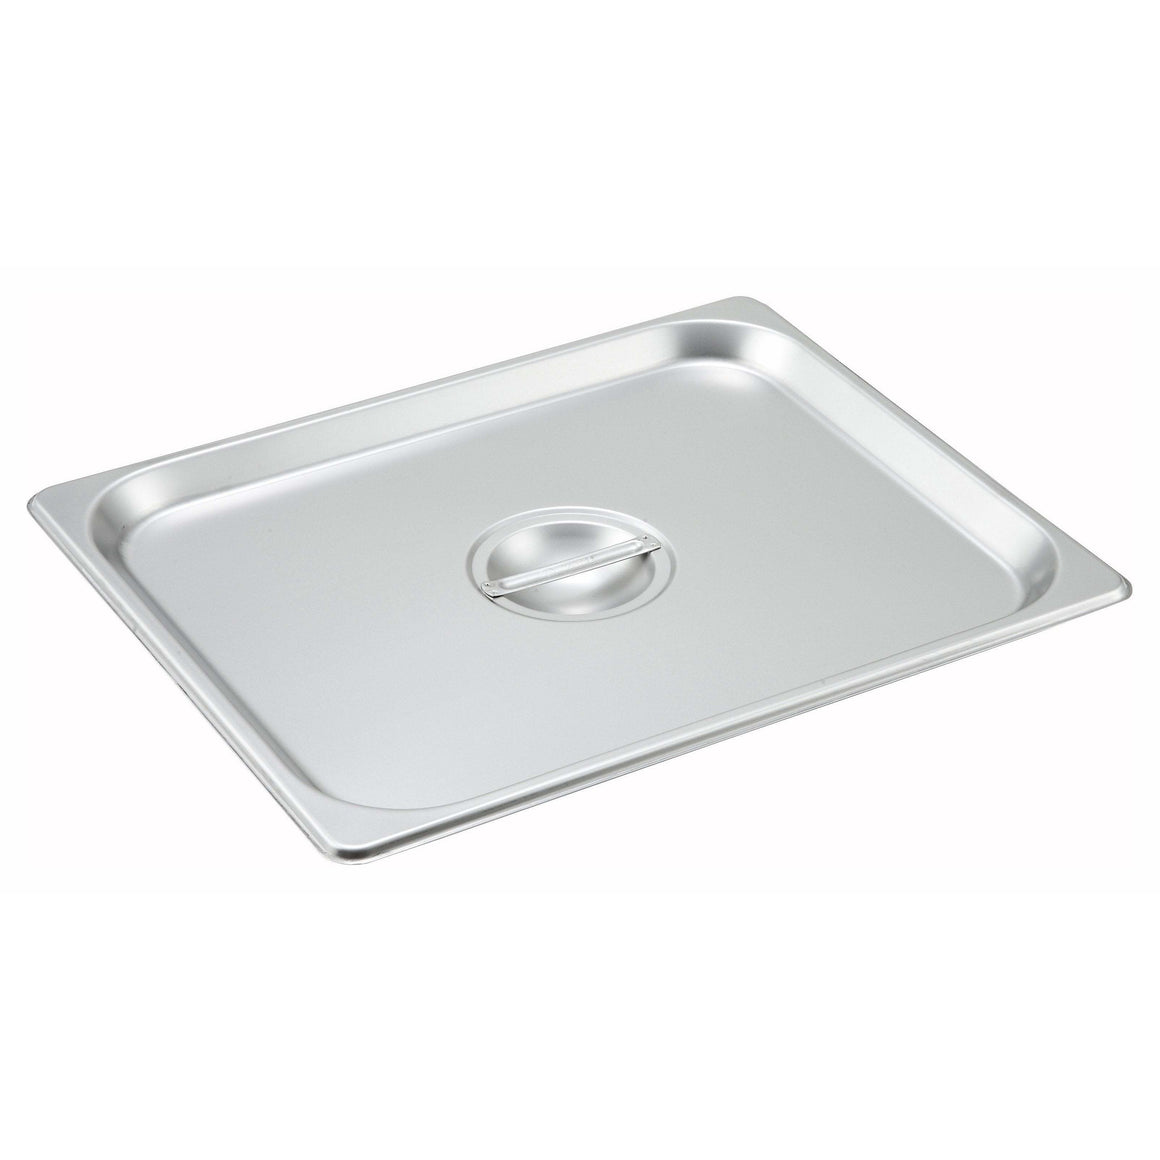 Winco - SPSCH - Stainless Steel Steam Pan Cover, Half-size, Solid - Steam Table